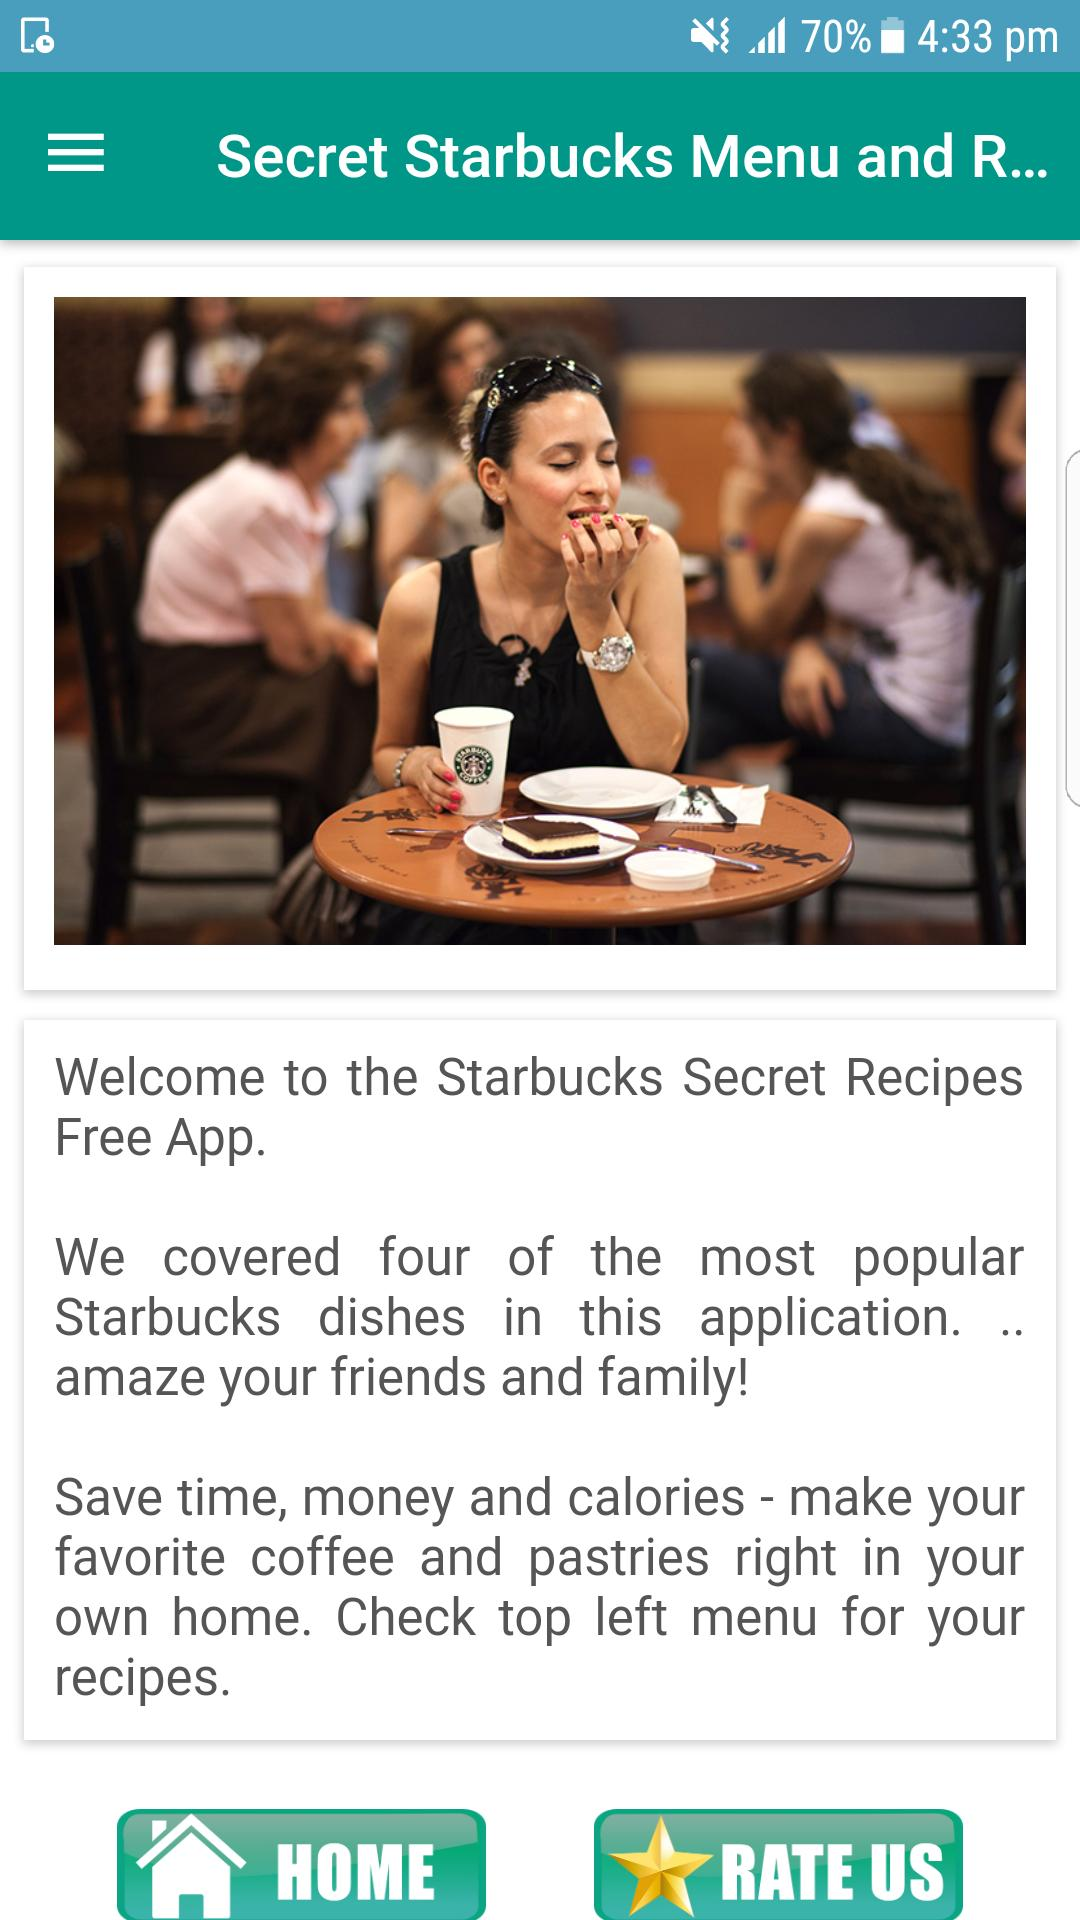 Secret Starbucks Menu and Recipes for Android - APK Download